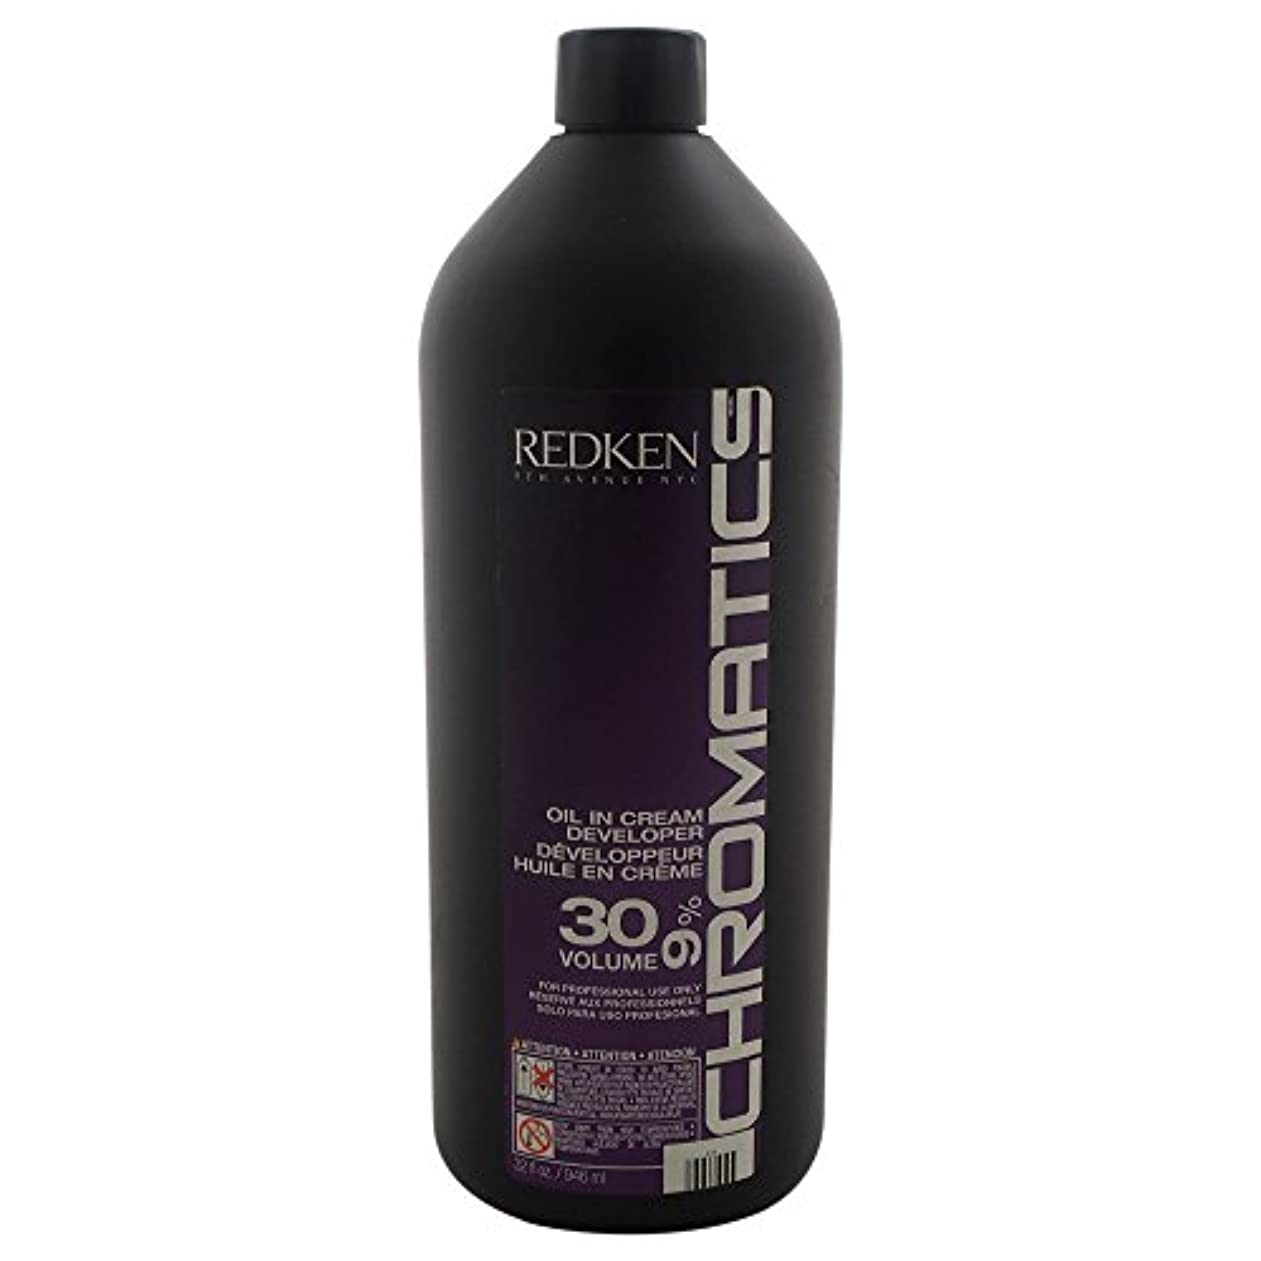 ペルーミネラルガイダンスRedken Chromatics Oil In Cream Developer 30 Volume 9 Percent Cream, 32 Ounce by Redken